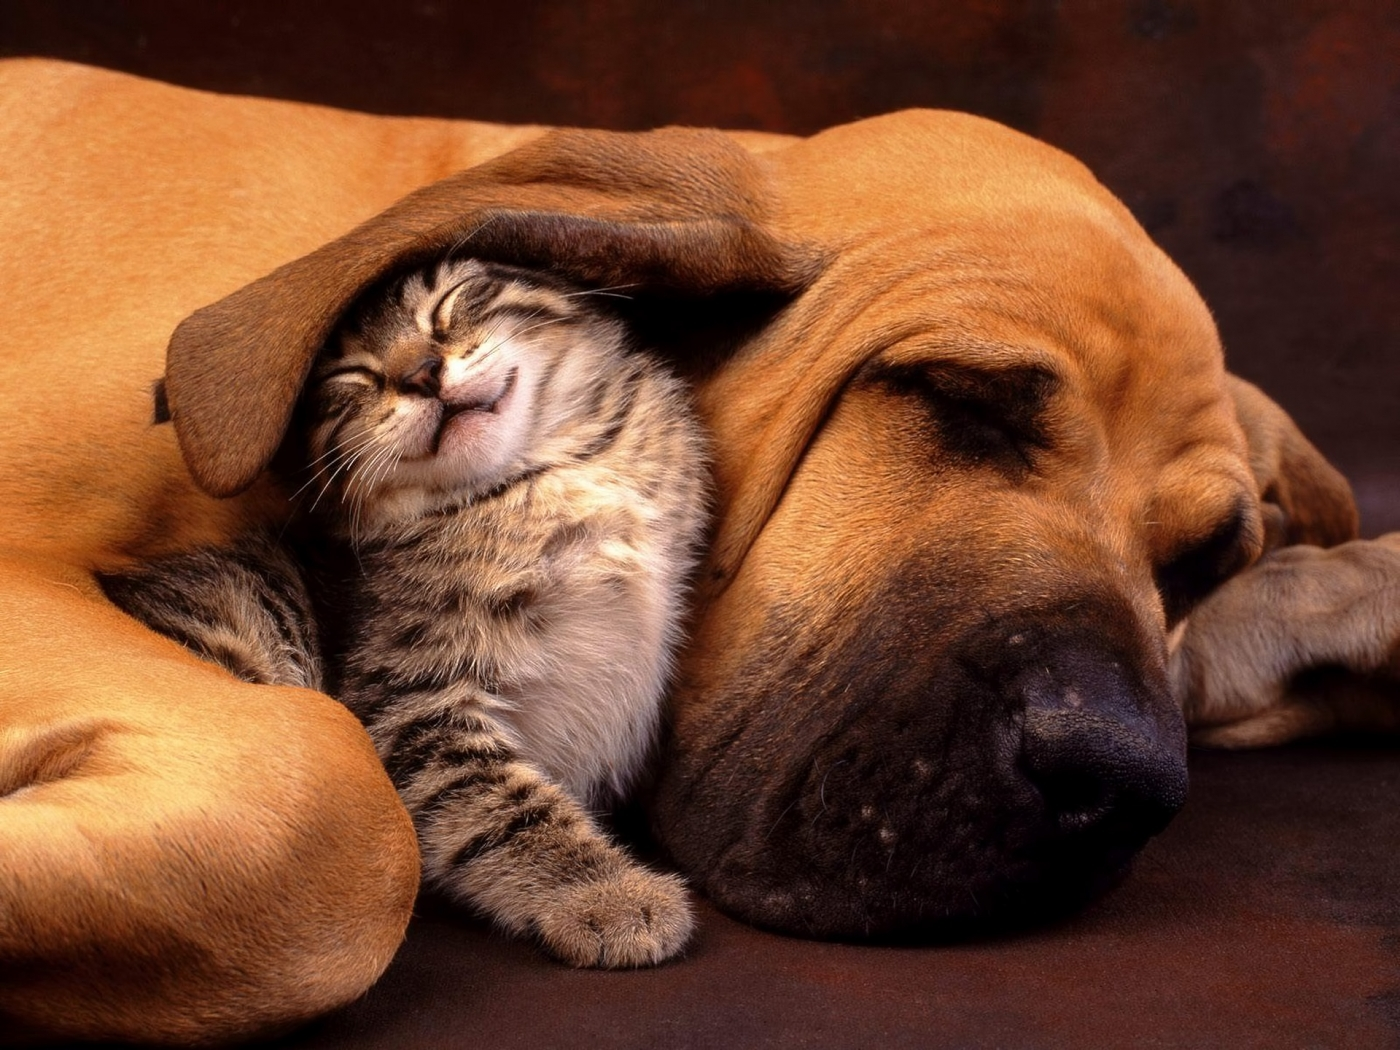 49231 download wallpaper Animals, Cats, Dogs screensavers and pictures for free